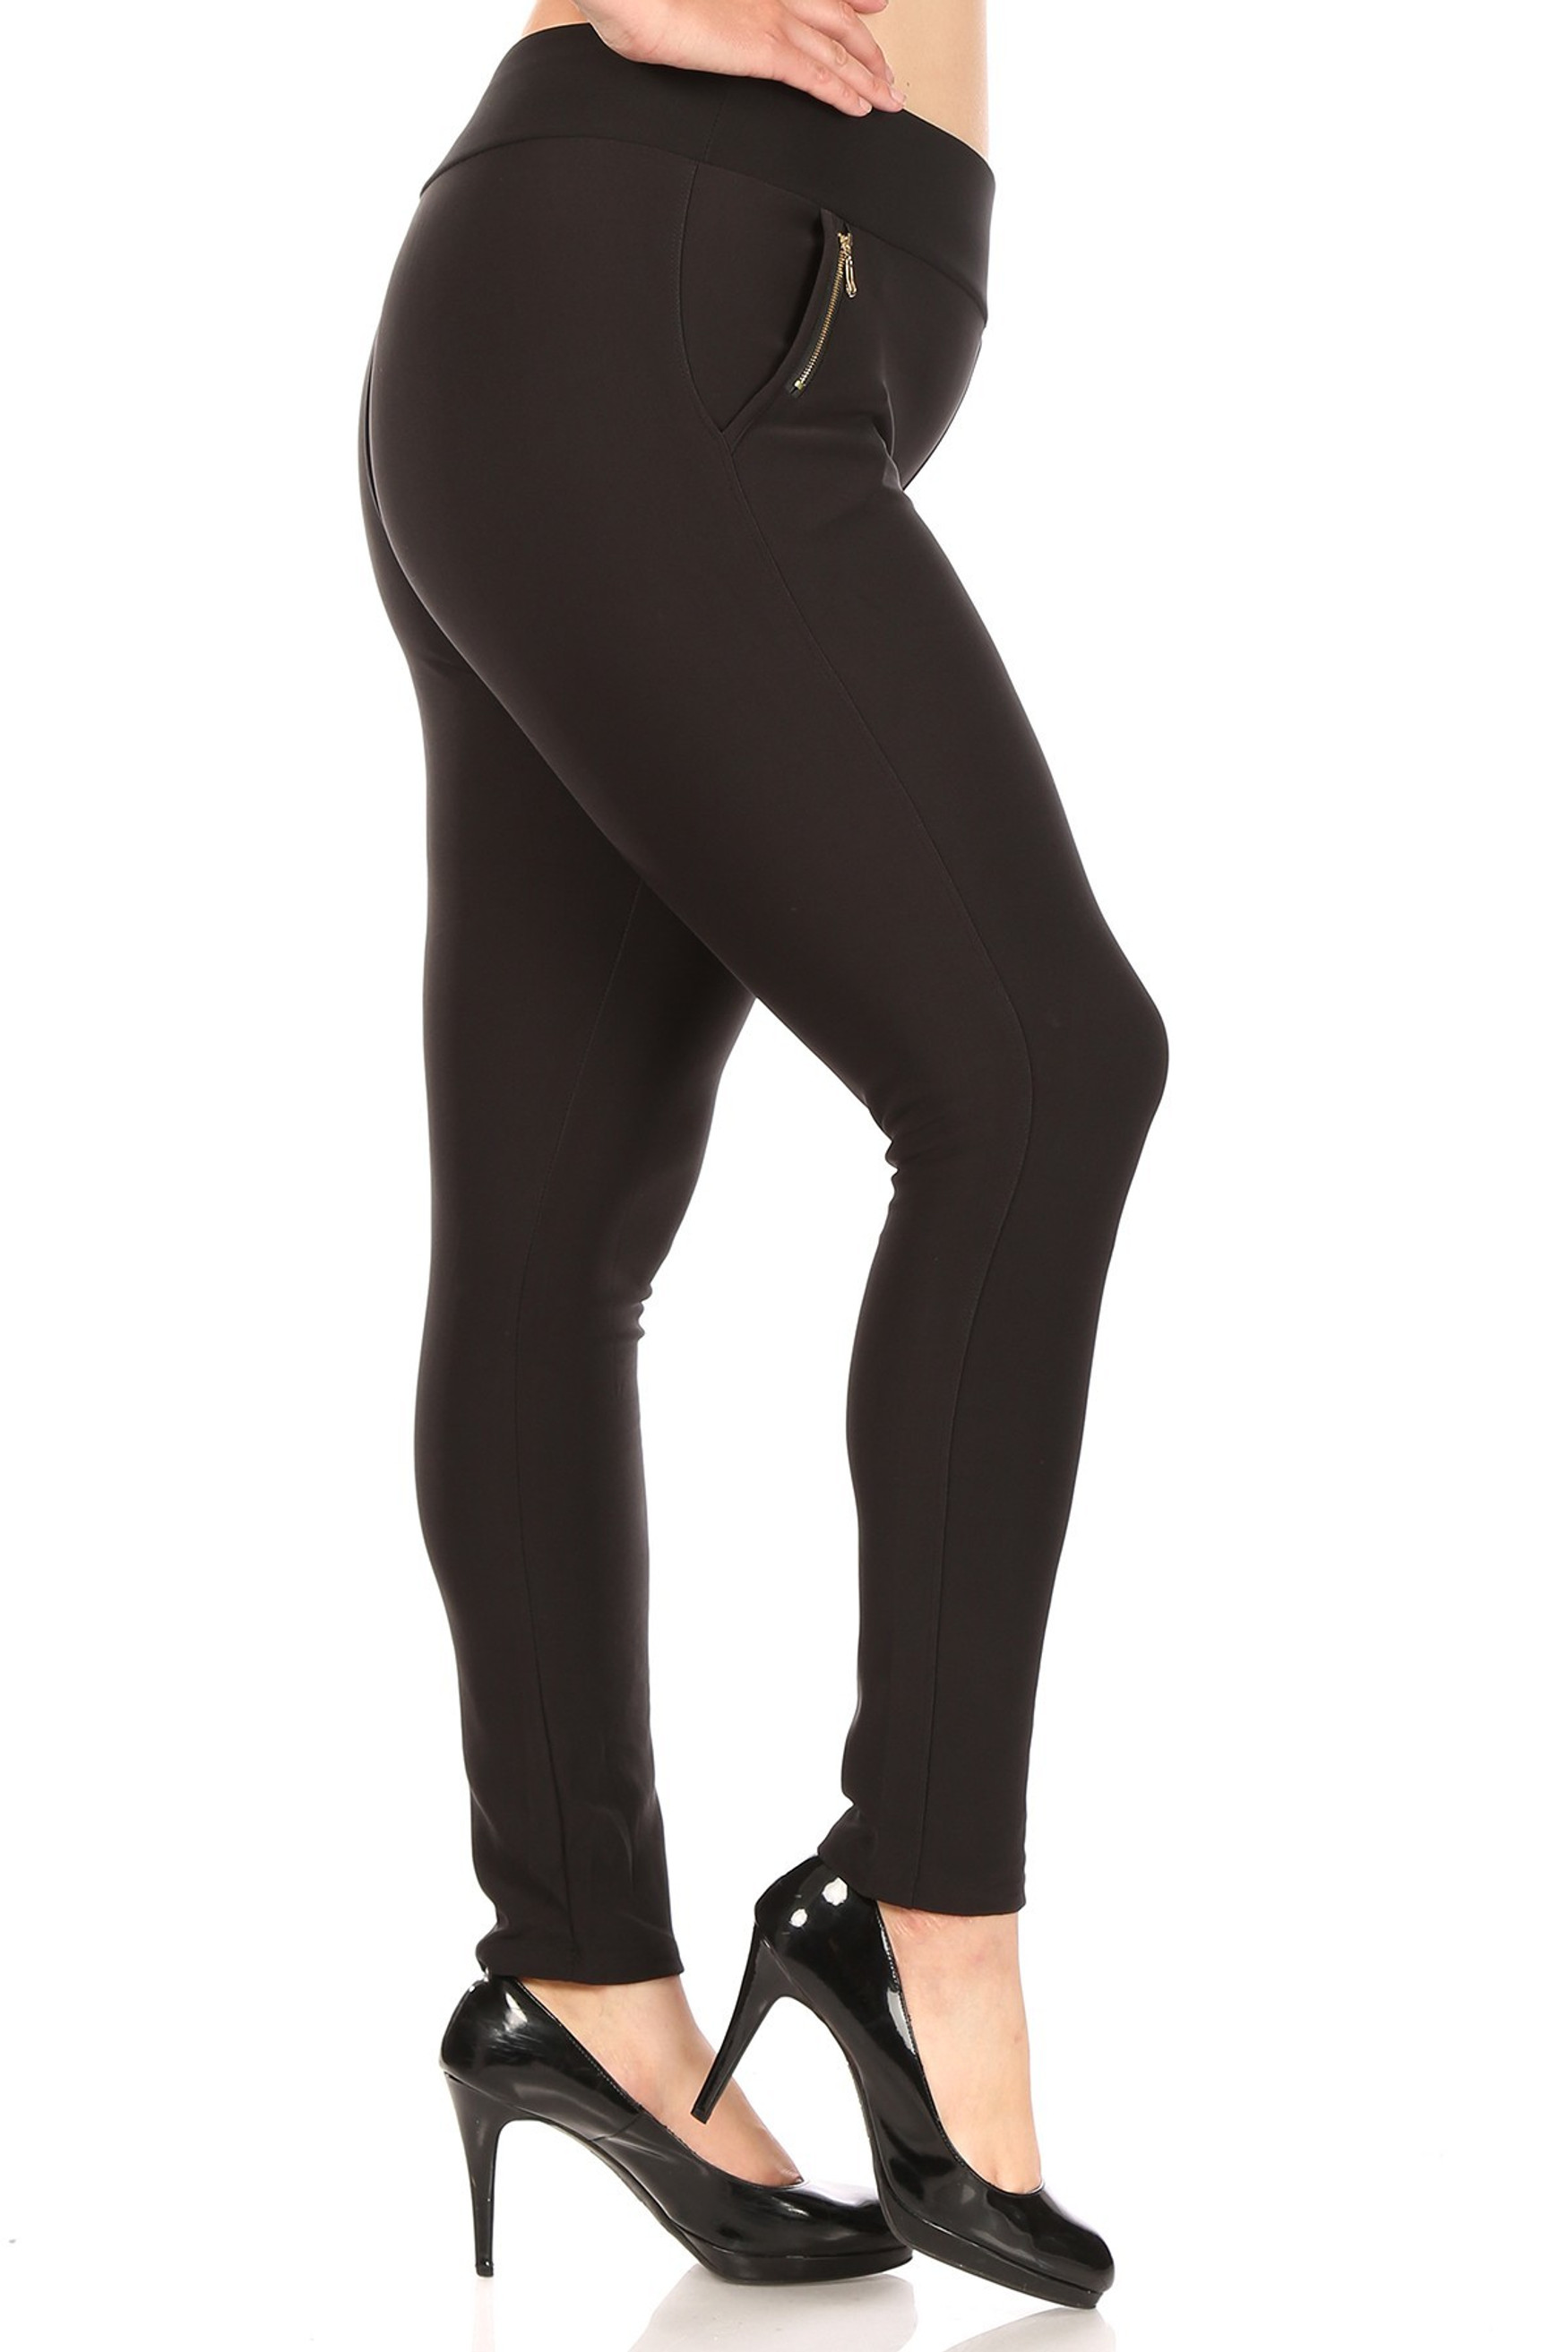 Black High Waisted Plus Size Treggings with Zipper Accent Pockets